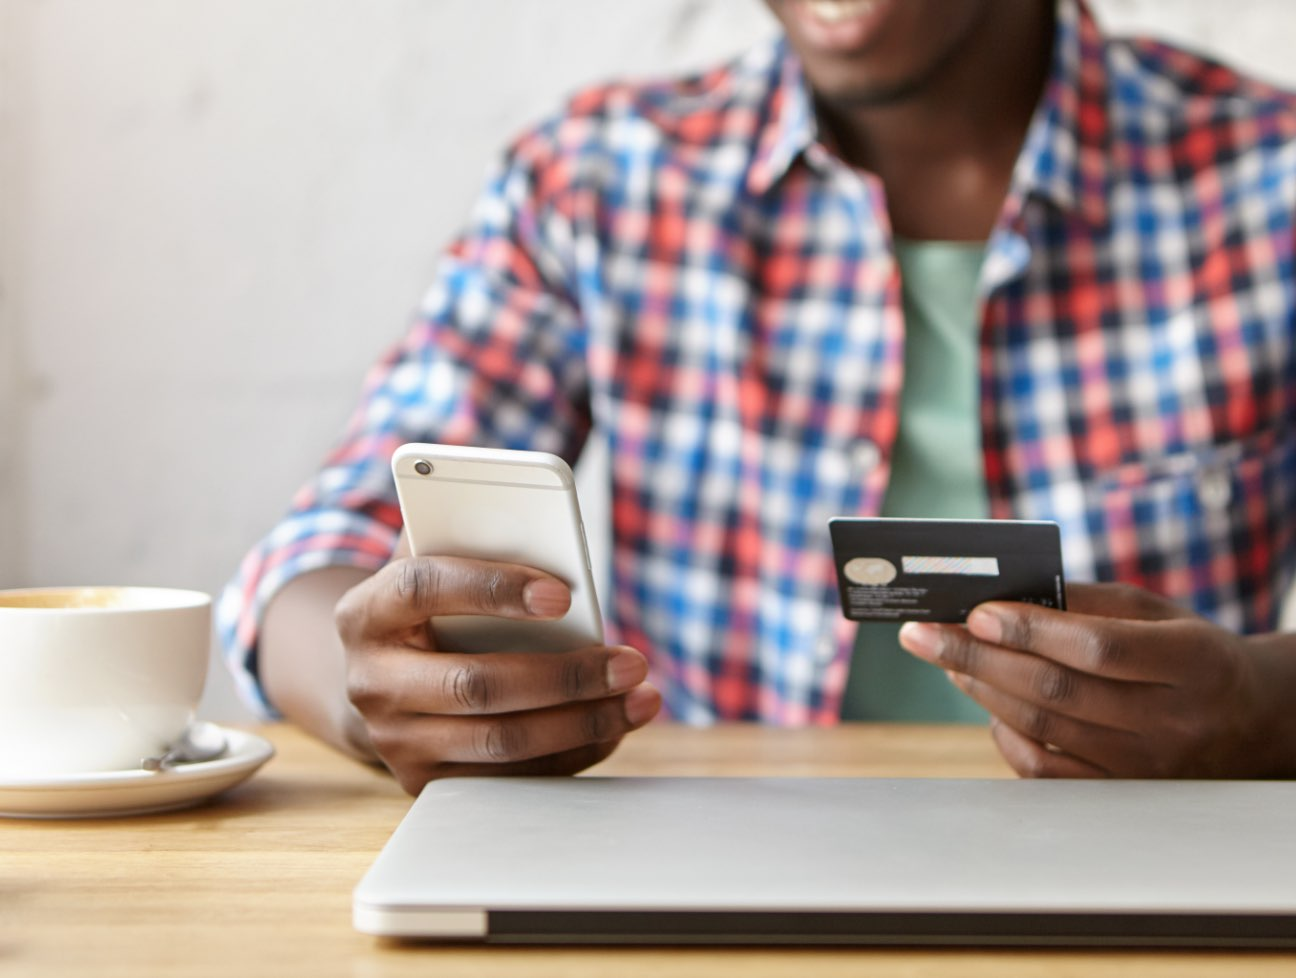 Person holding a cell phone and a payment card